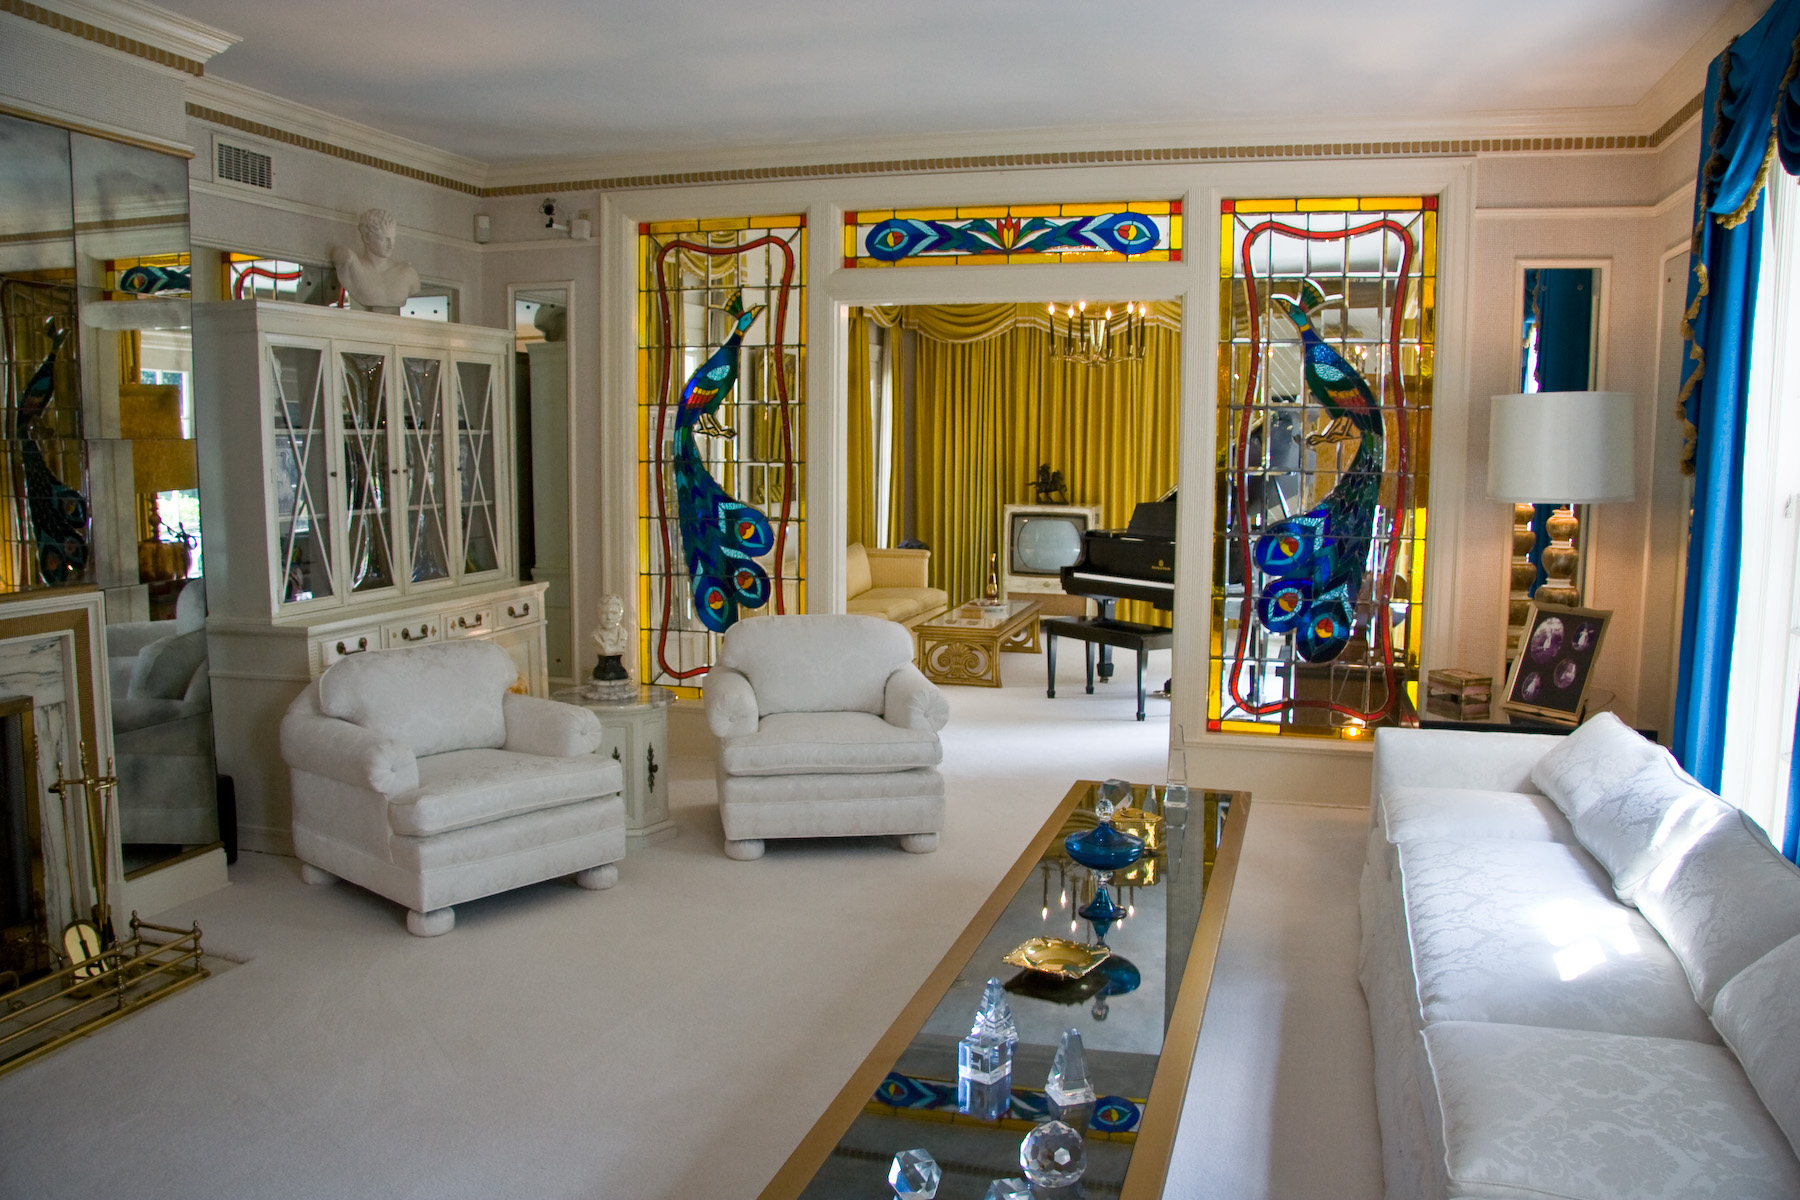 graceland living room. 12 graceland living room interior design ... & graceland living room - Gala.grabadosartisticos.co